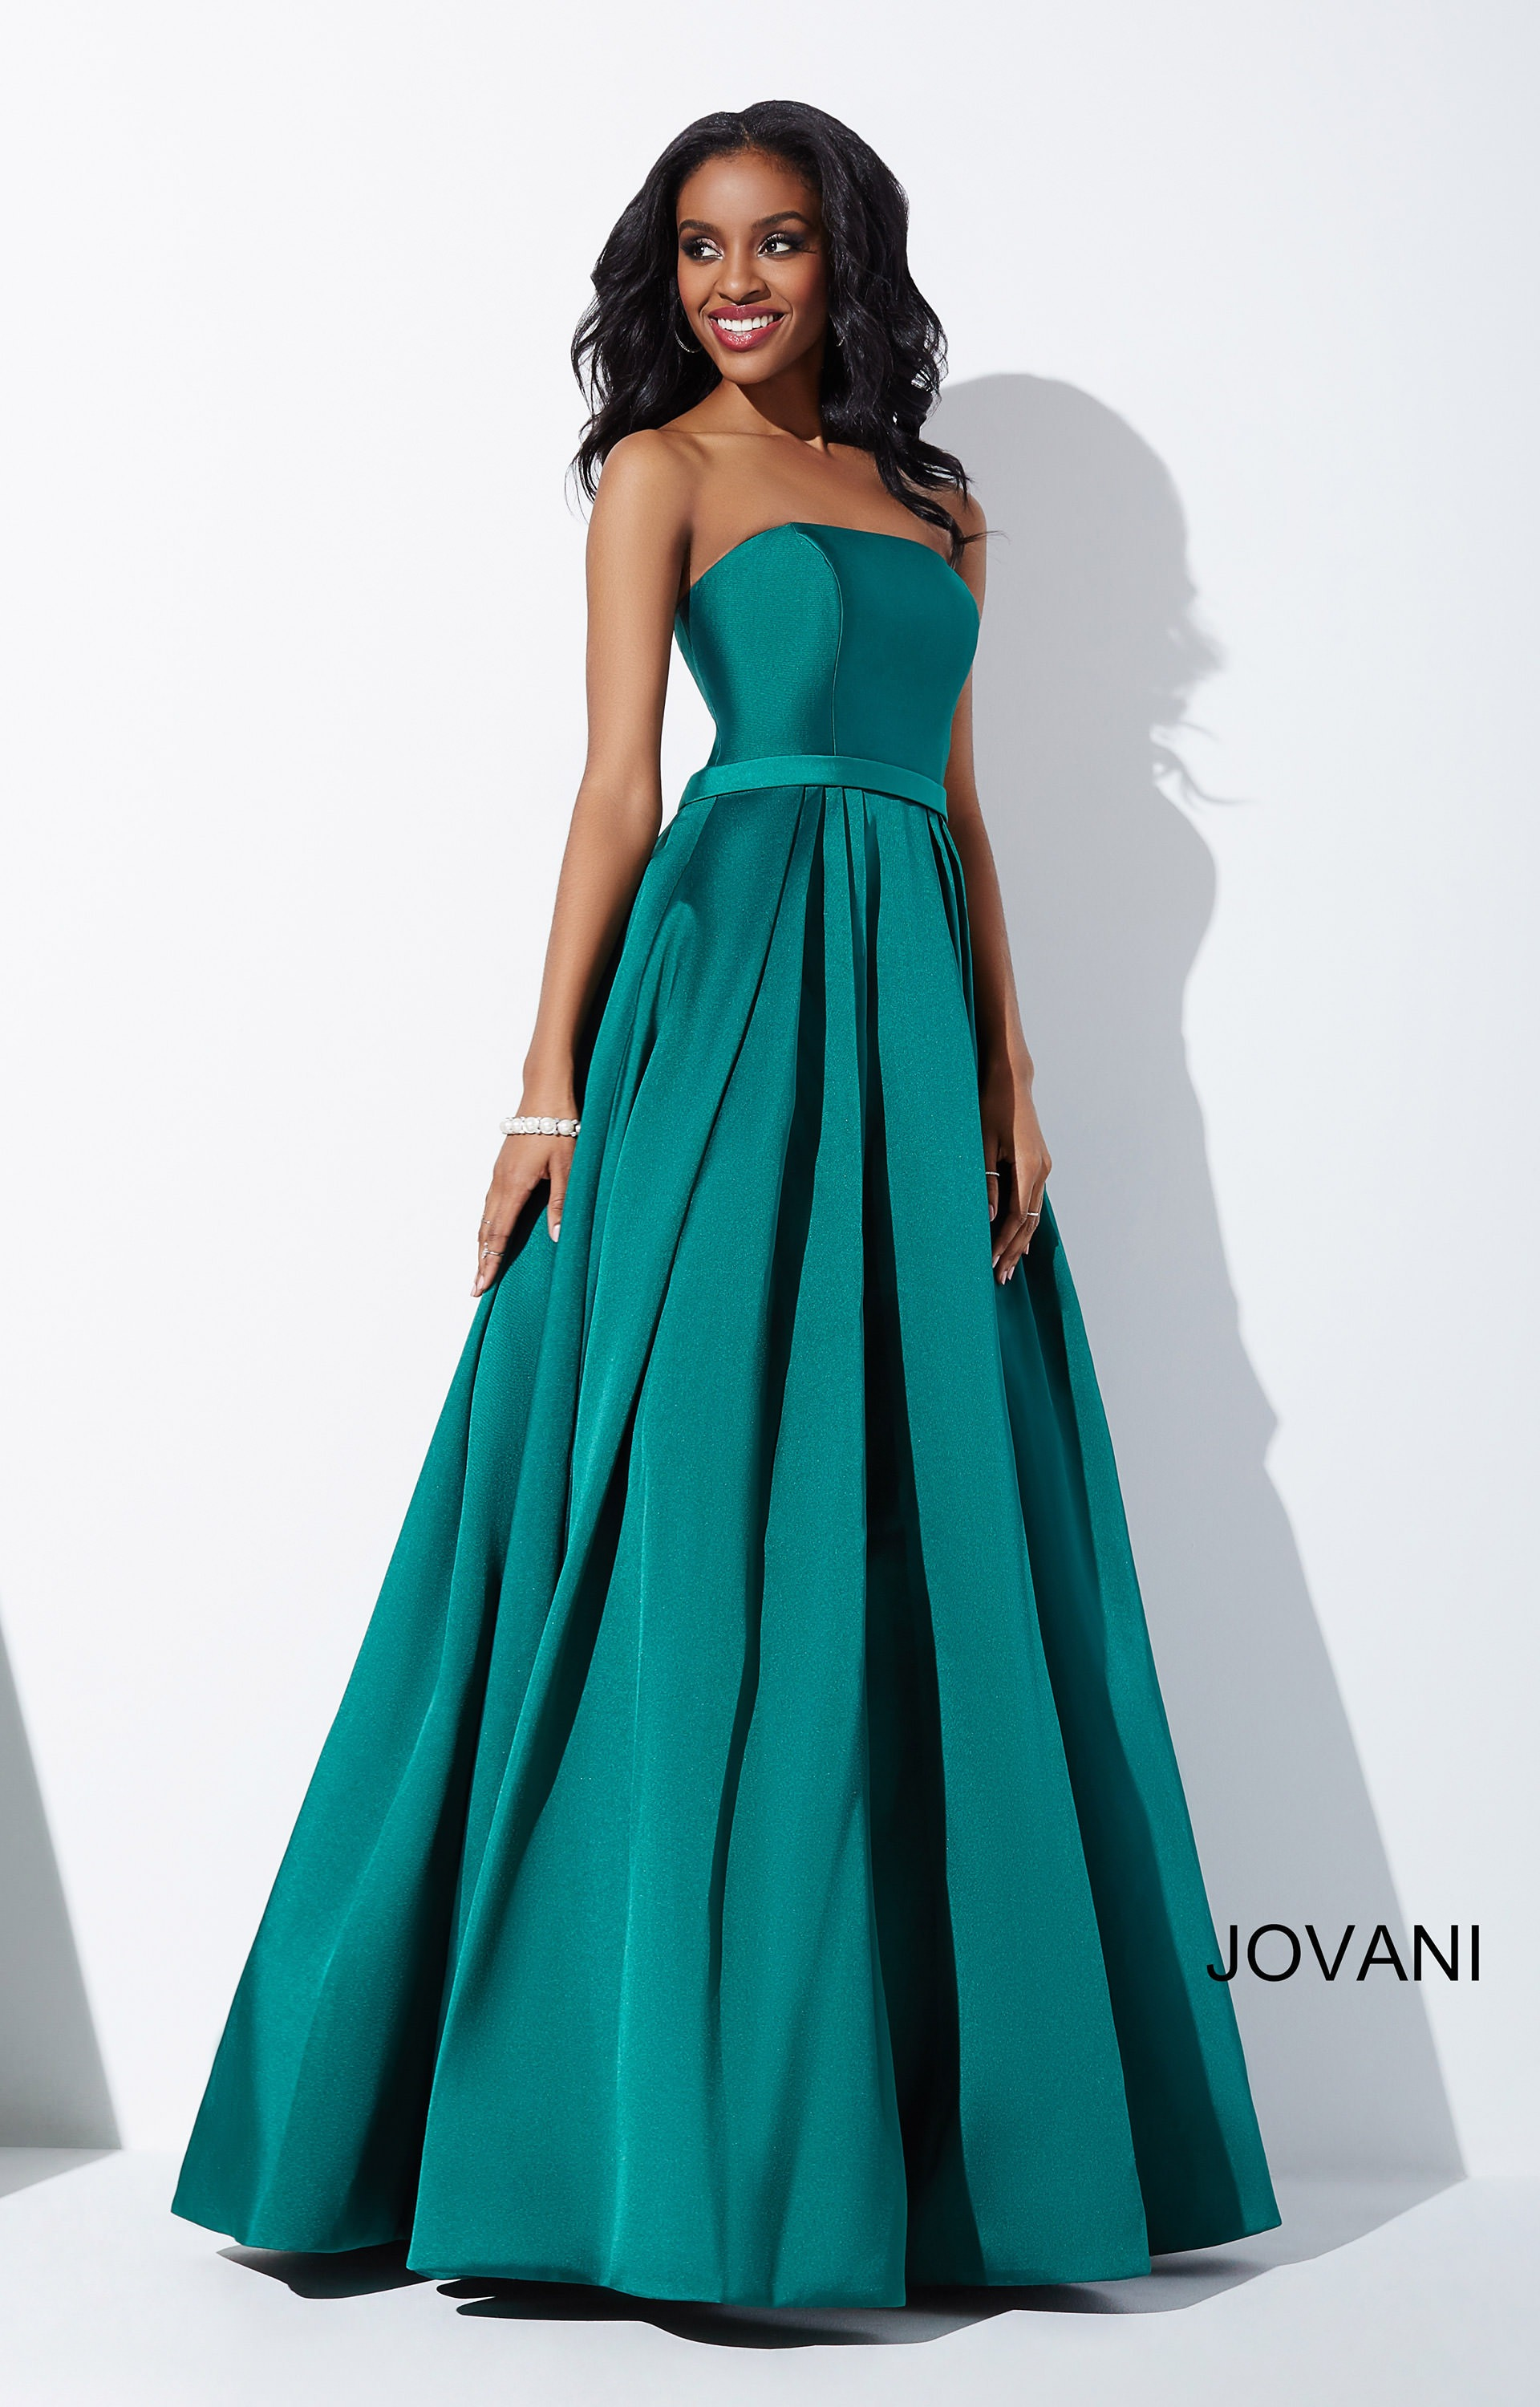 Jovani 39243 - Simple and Strapless A line Prom Dress